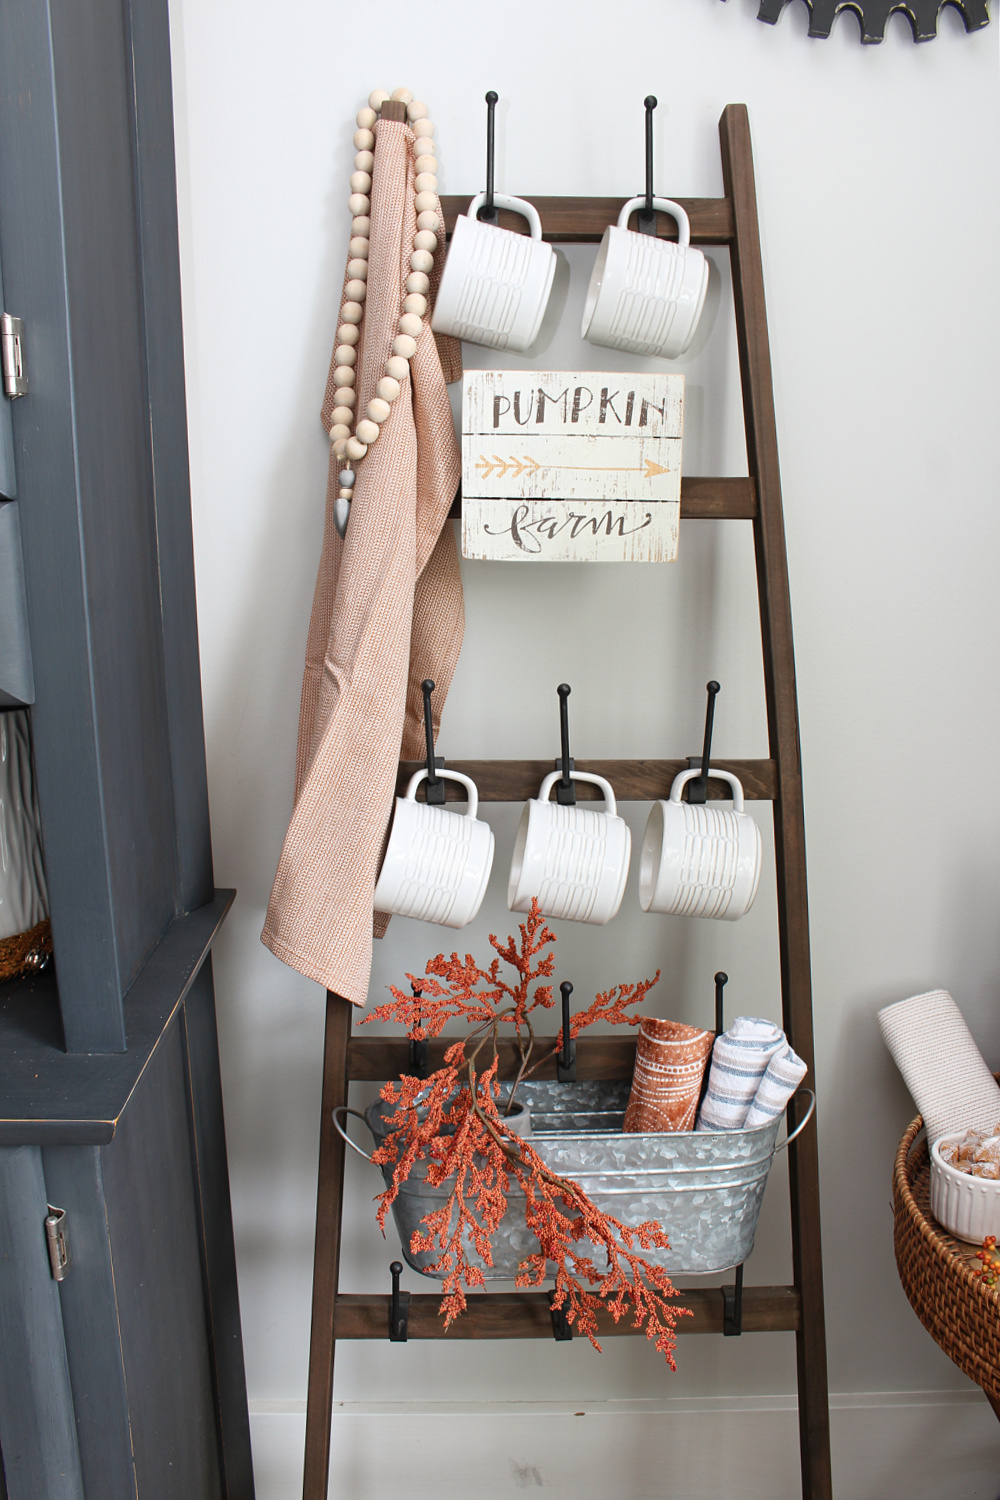 Rustic mug ladder decorated for fall.